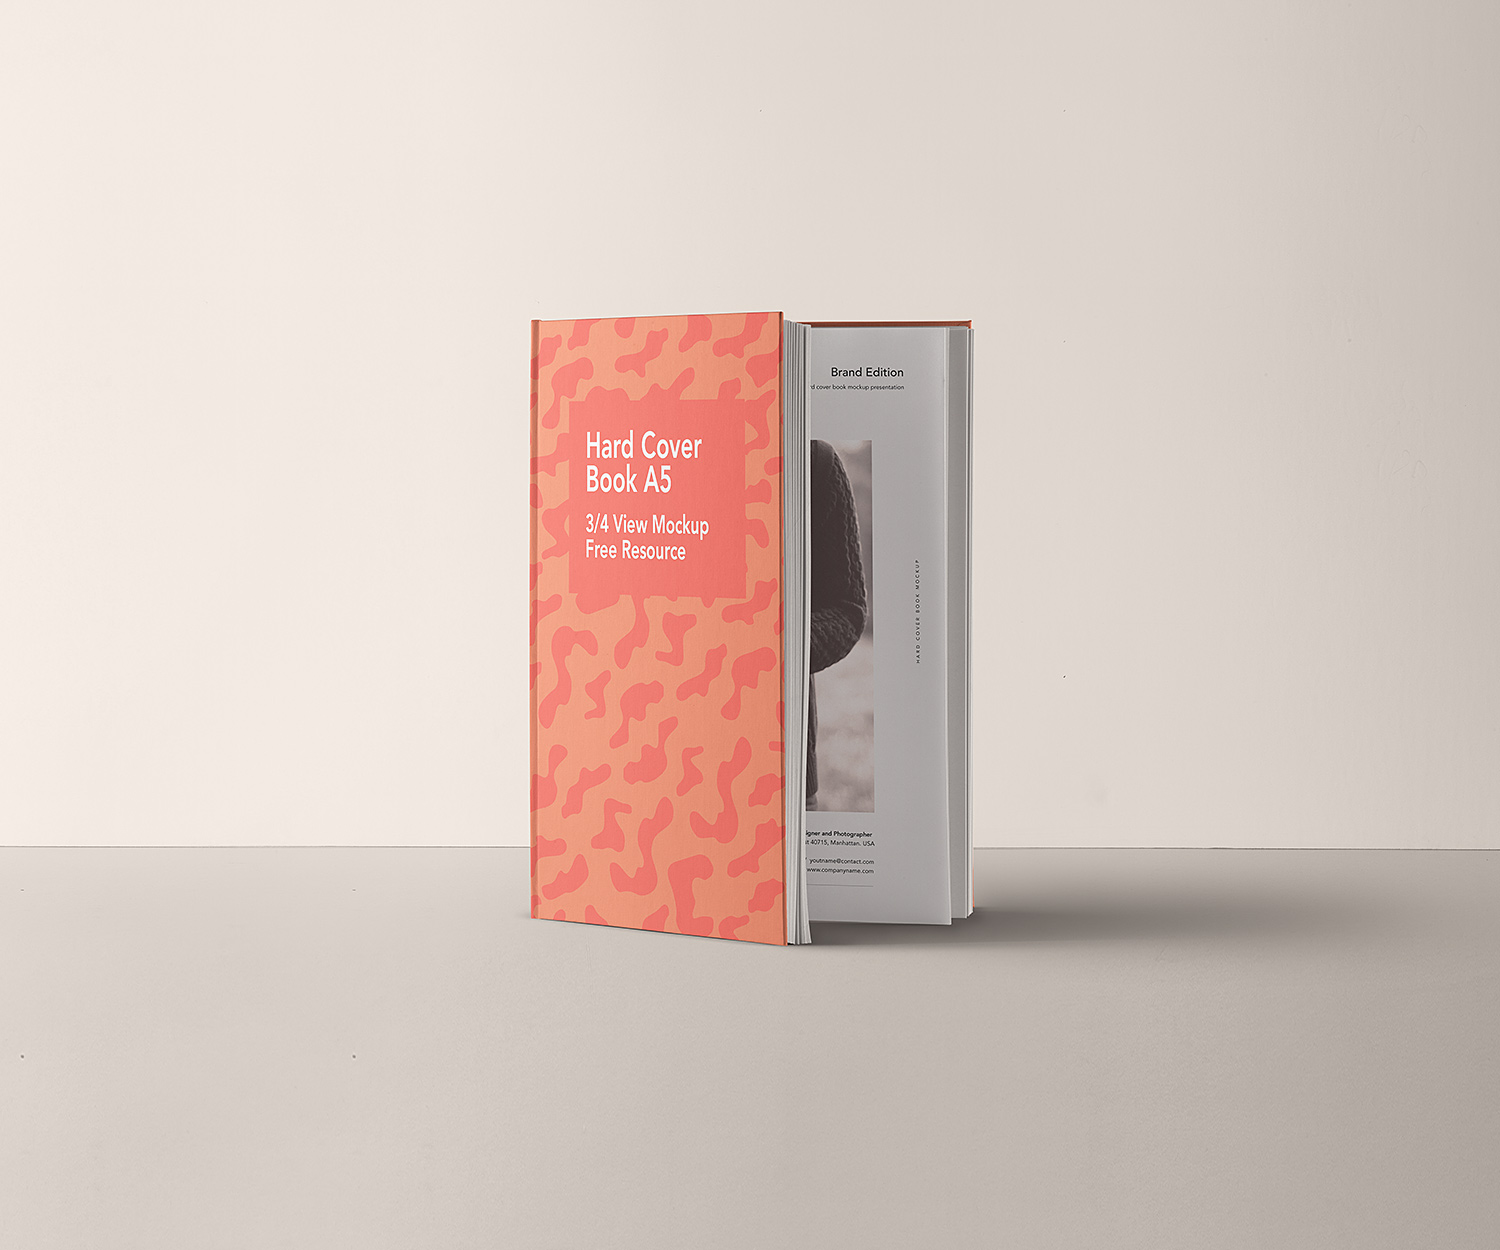 A5 Hardcover Book Free Mockup